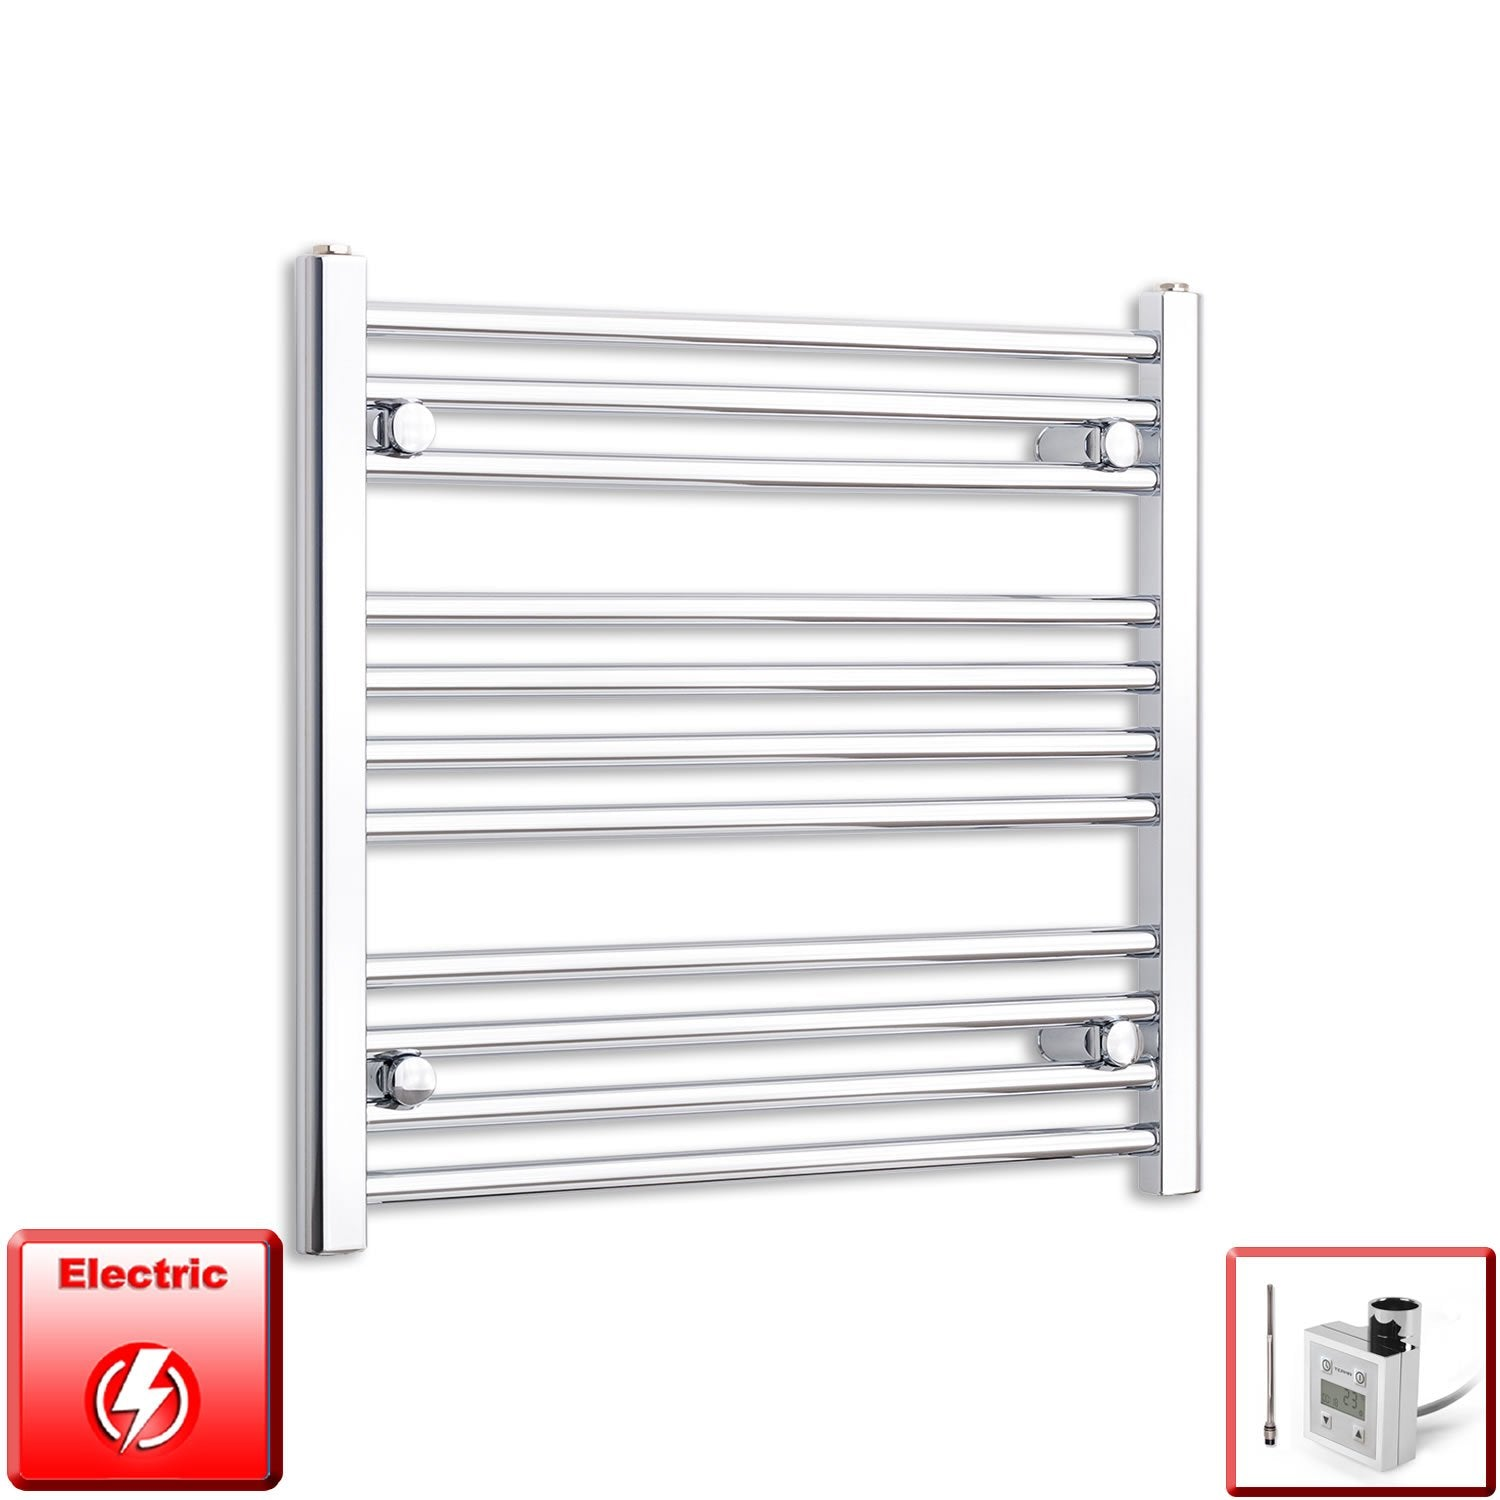 650mm Wide 600mm High Flat Chrome Pre-Filled Electric Heated Towel Rail Radiator HTR,KTX-3 Thermostatic Element